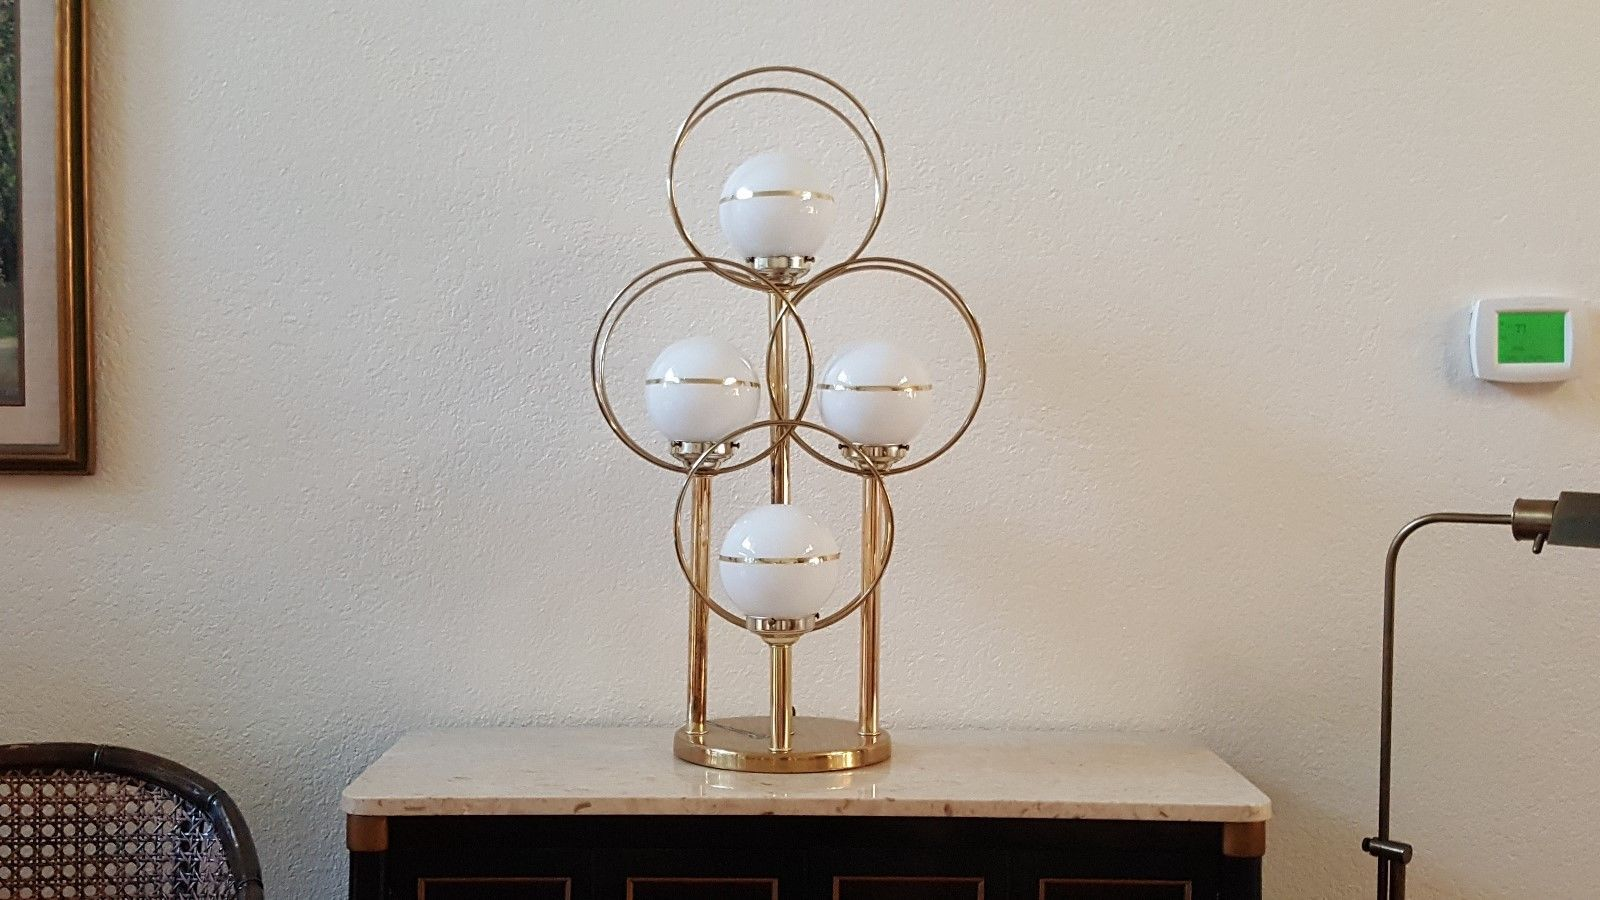 1970 S Mid Century Sonneman Brass Chrome Atomic Eyeball Orb Saturn Table Lamp In Antiques Periods Styles Mid Ce Mid Century Modern Table Lamps Sonneman Orb